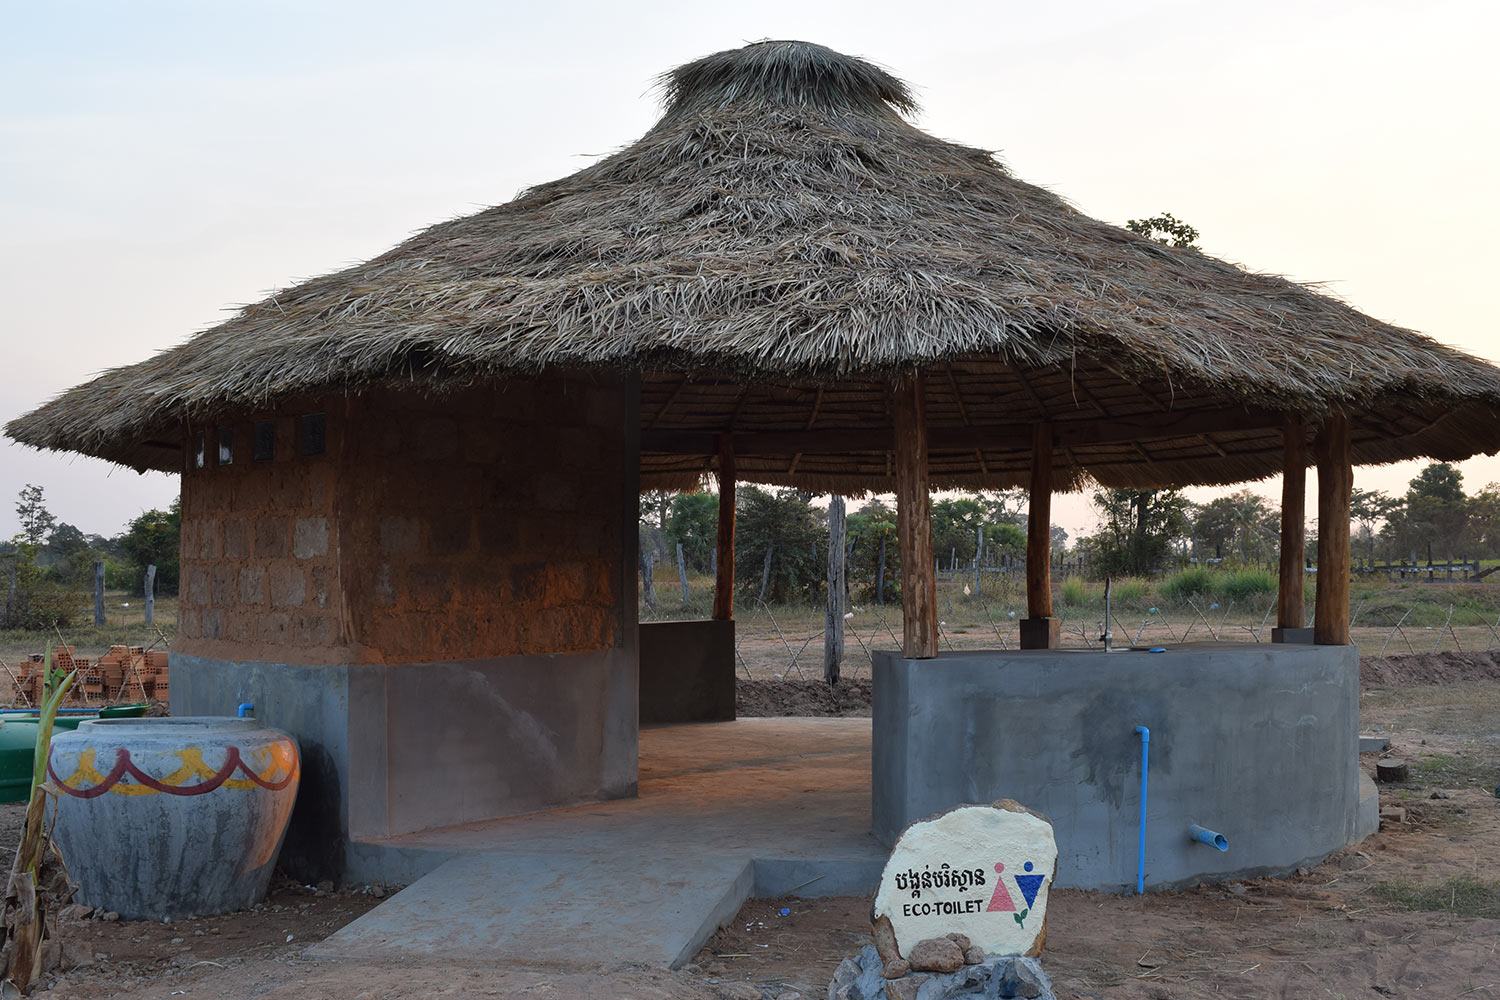 Eco-toilets situated within a small, straw-roofed hut